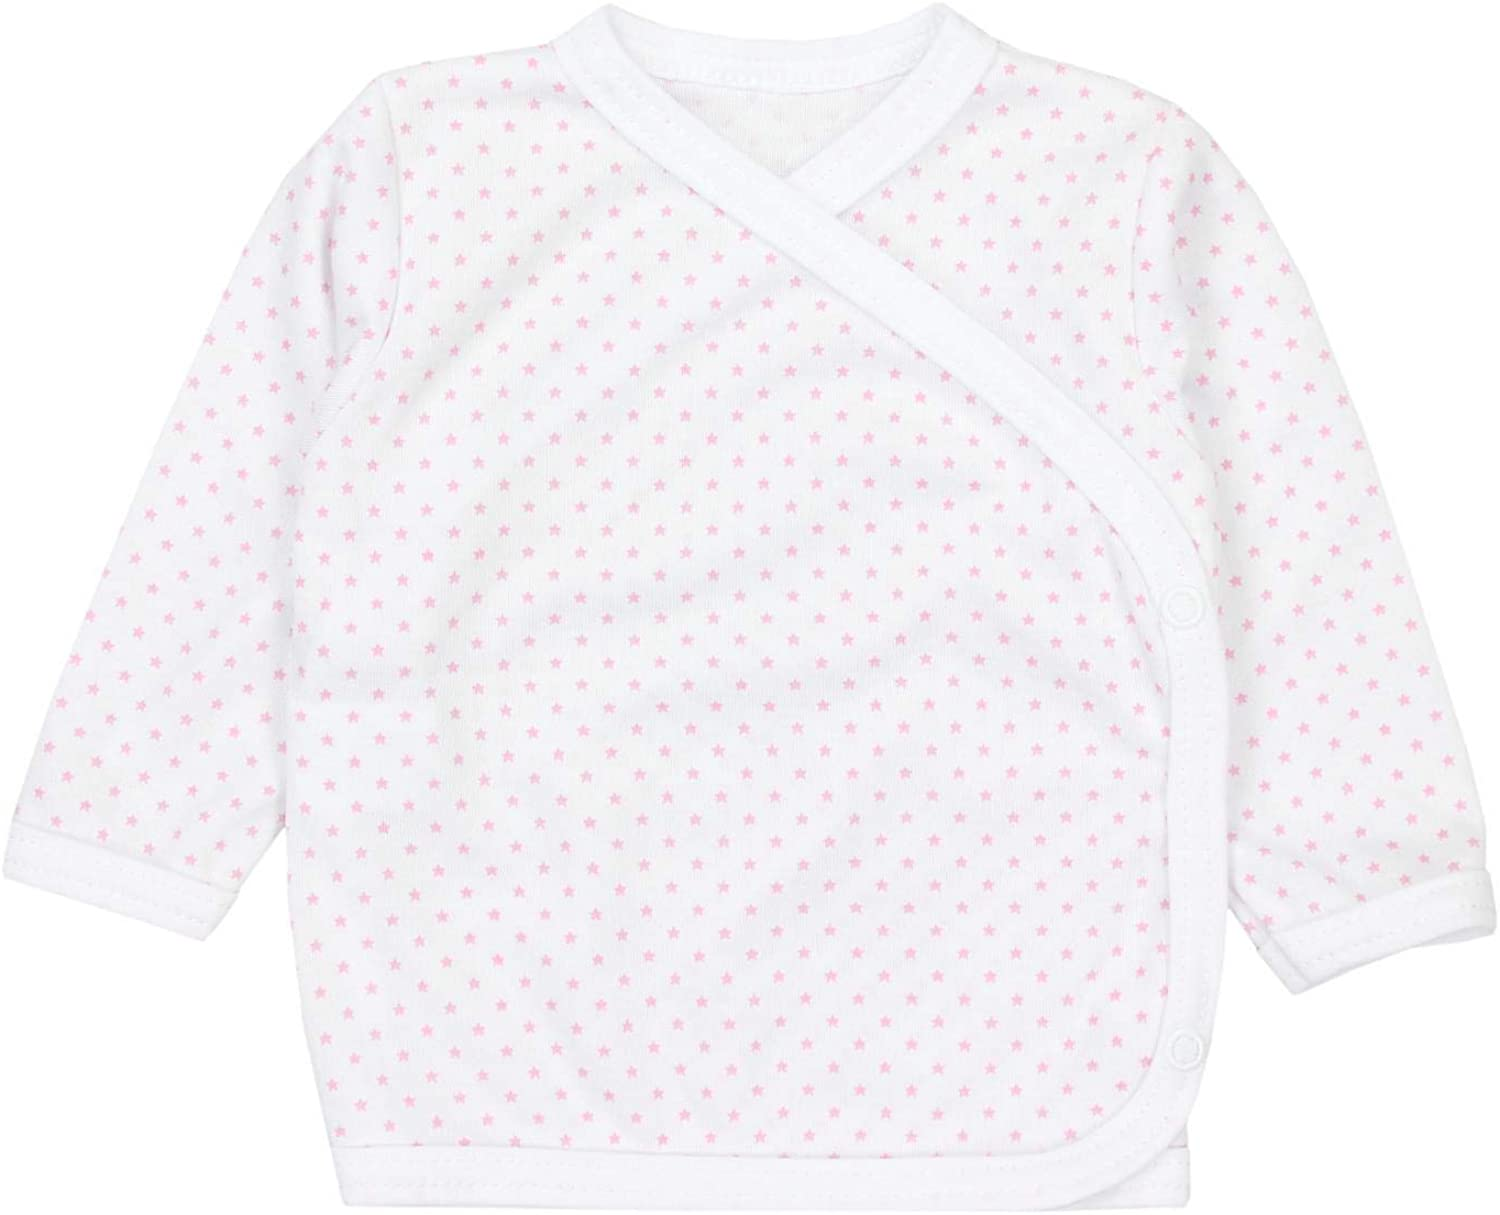 TupTam Baby Unisex Side Snap Shirts Long Sleeve Pack of 5